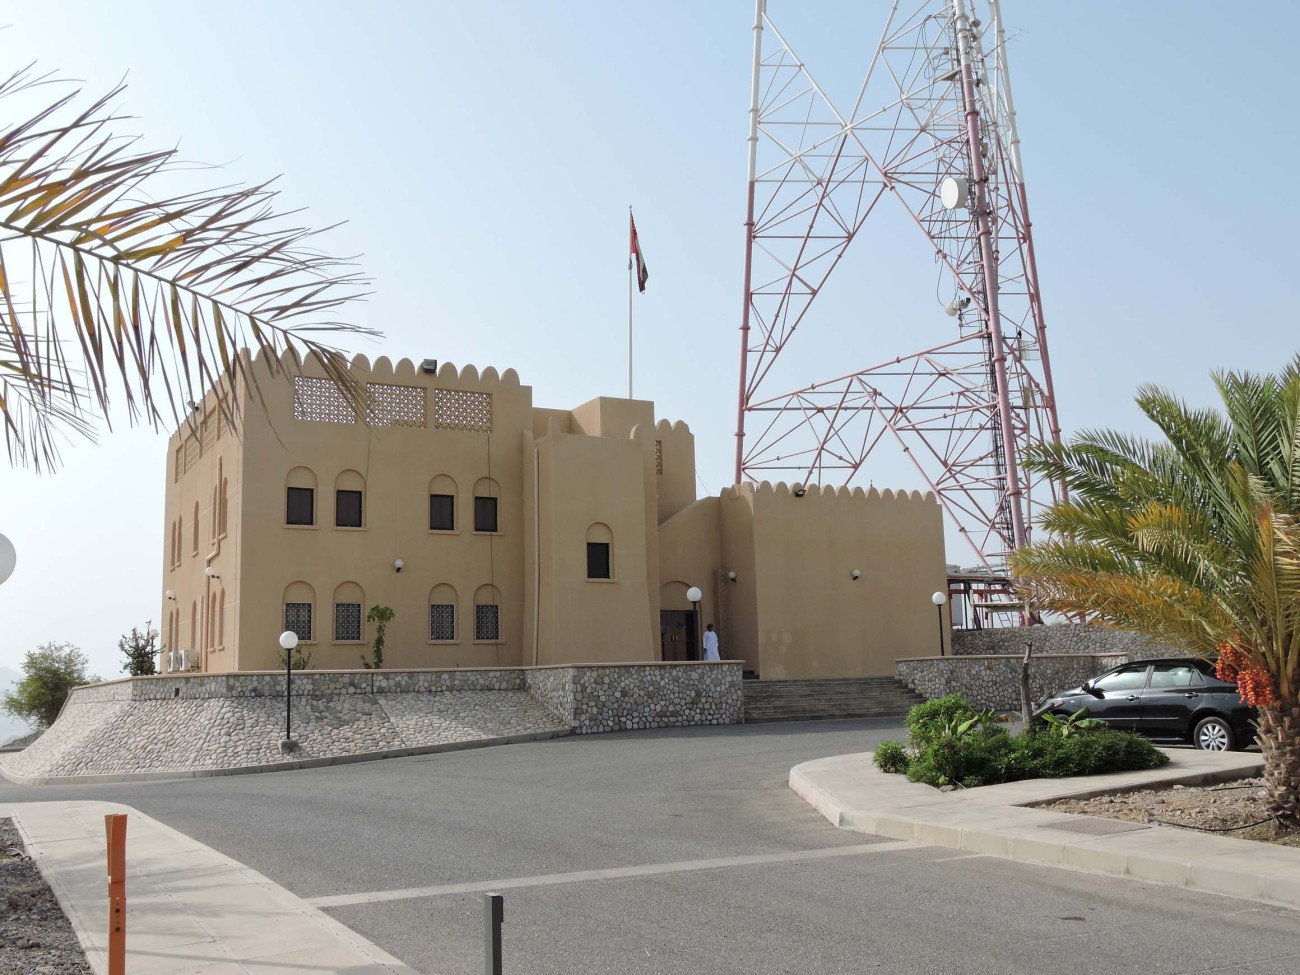 Transmitter site in Ruwi, a district of the capital, Muscat, is the main station of Oman's Public Authority for Radio & TV.